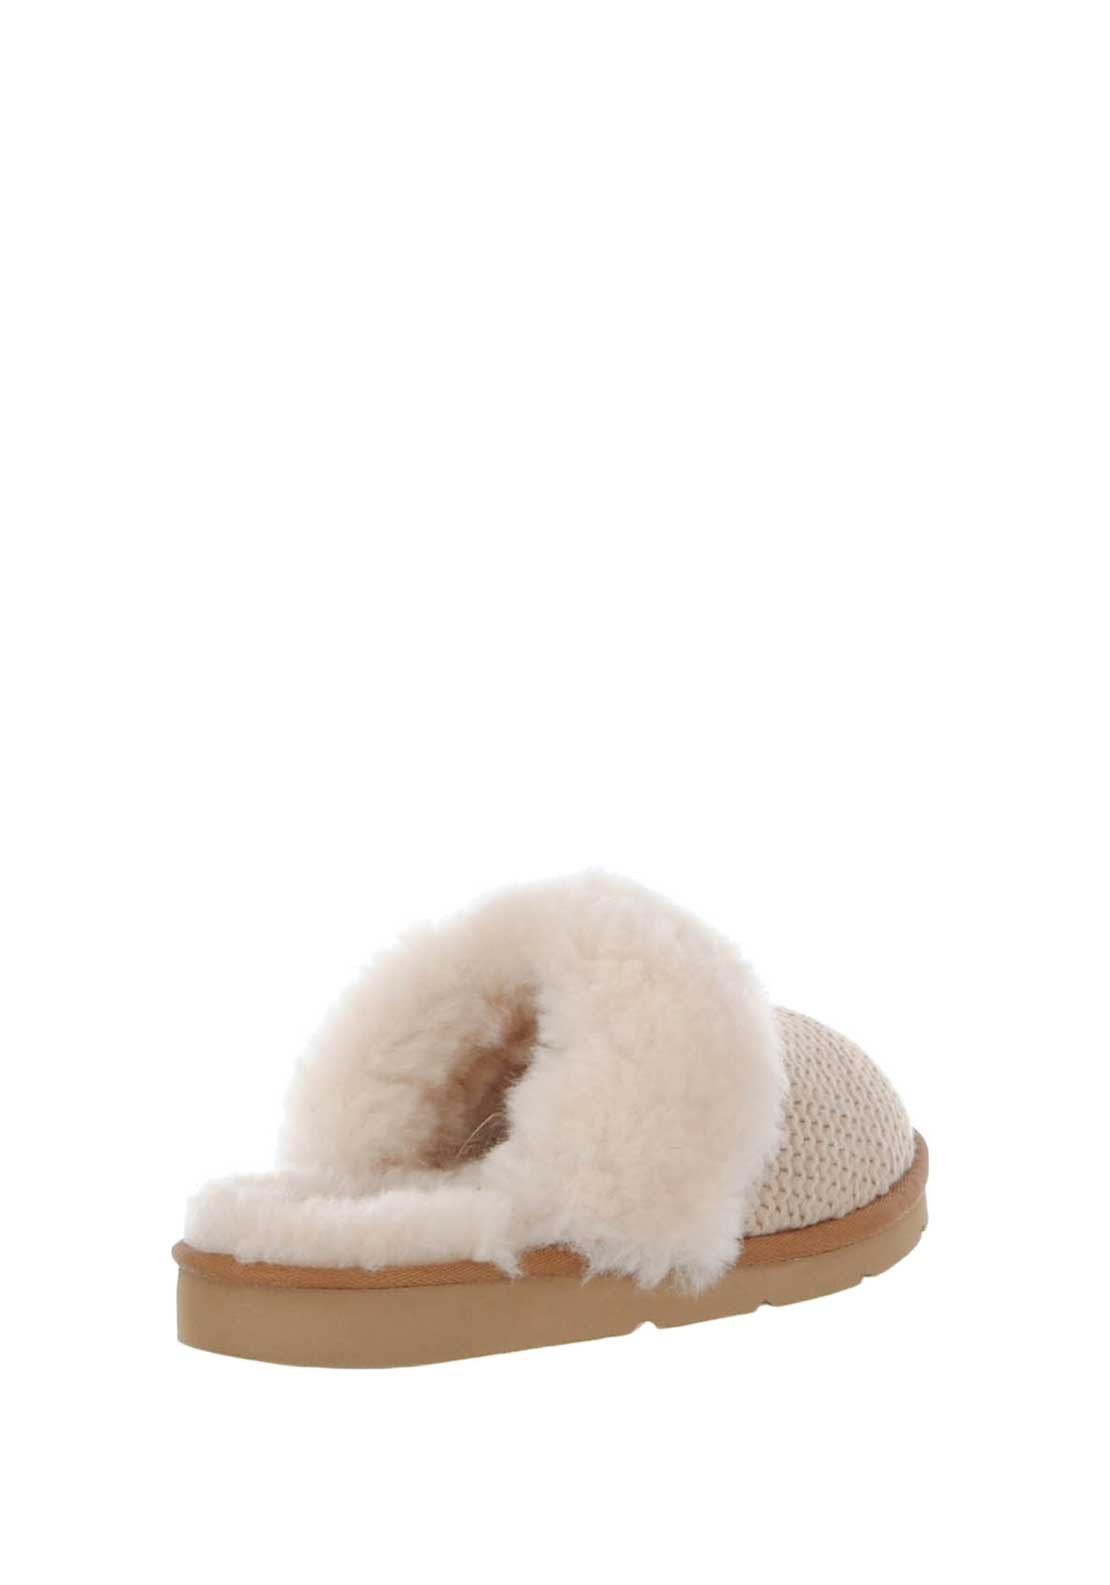 807a9ba8713 UGG Womens Cozy Knit Slippers, Cream